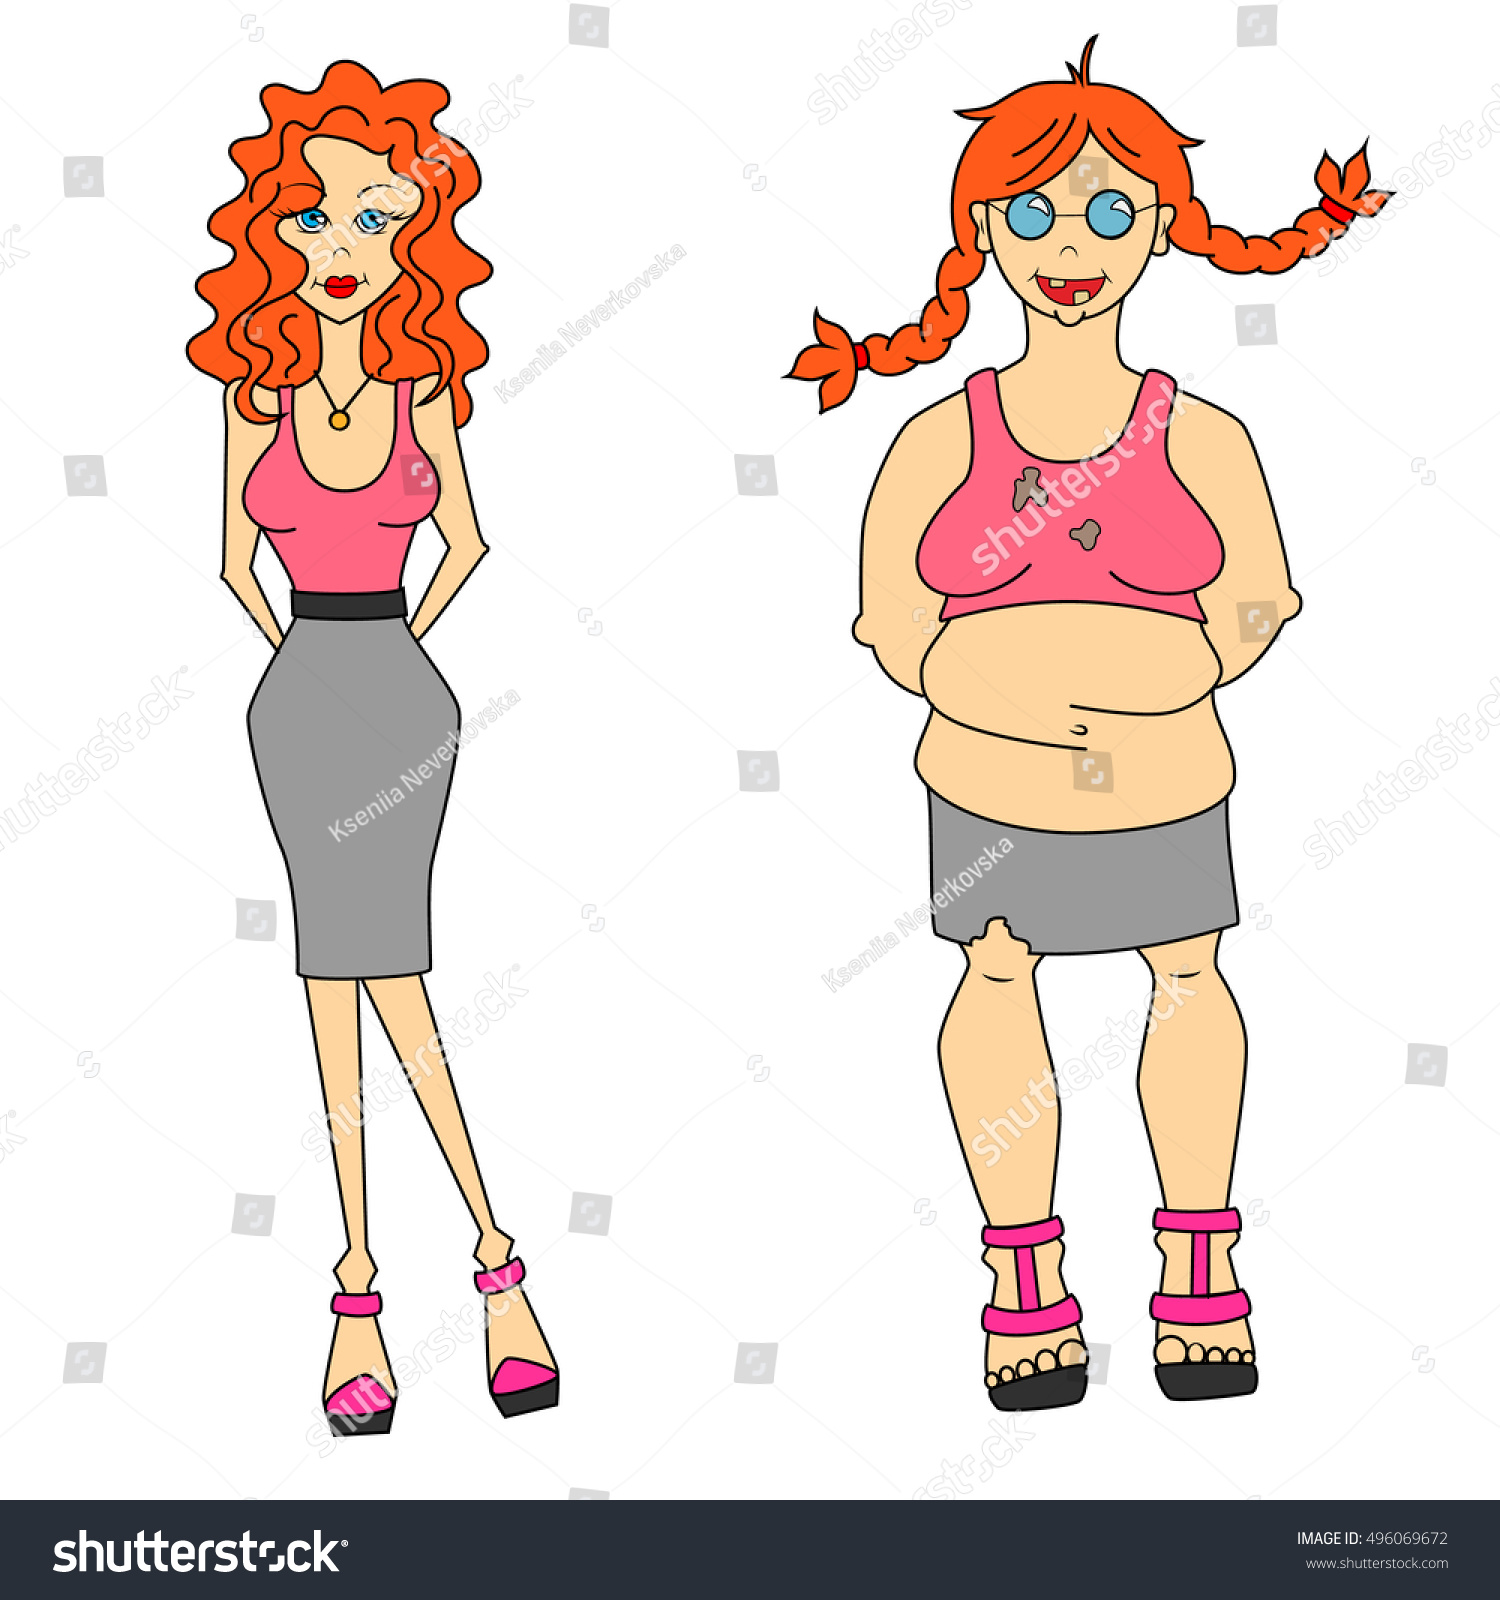 Vector Illustration Thick Thin Ugly Beautiful Stock Vector 496069672 - Shutterstock-2247